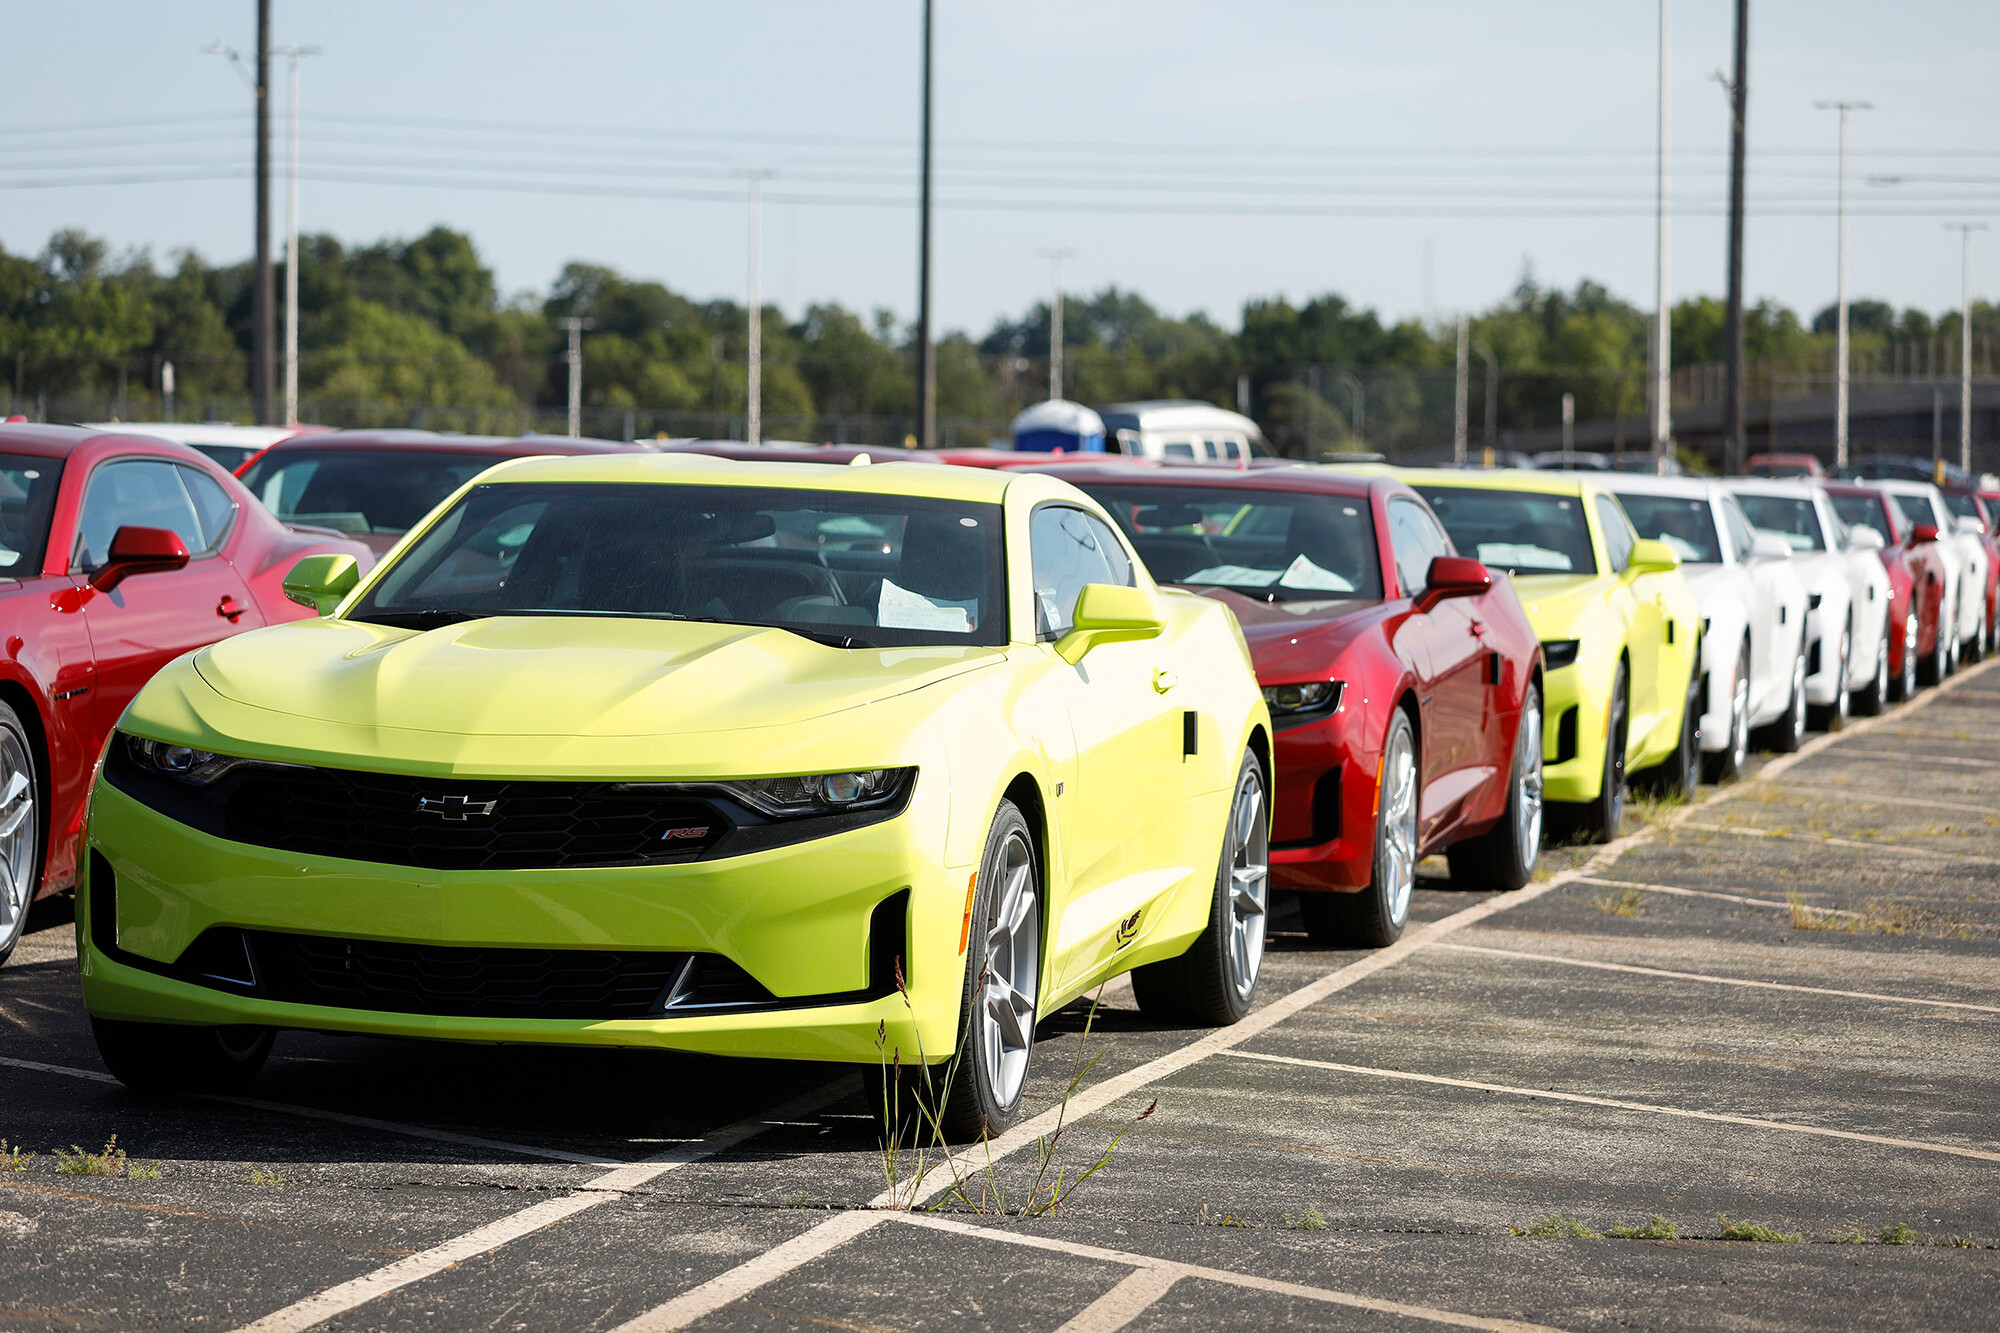 GM earnings and sales fall as the chip shortage continues to plague automakers